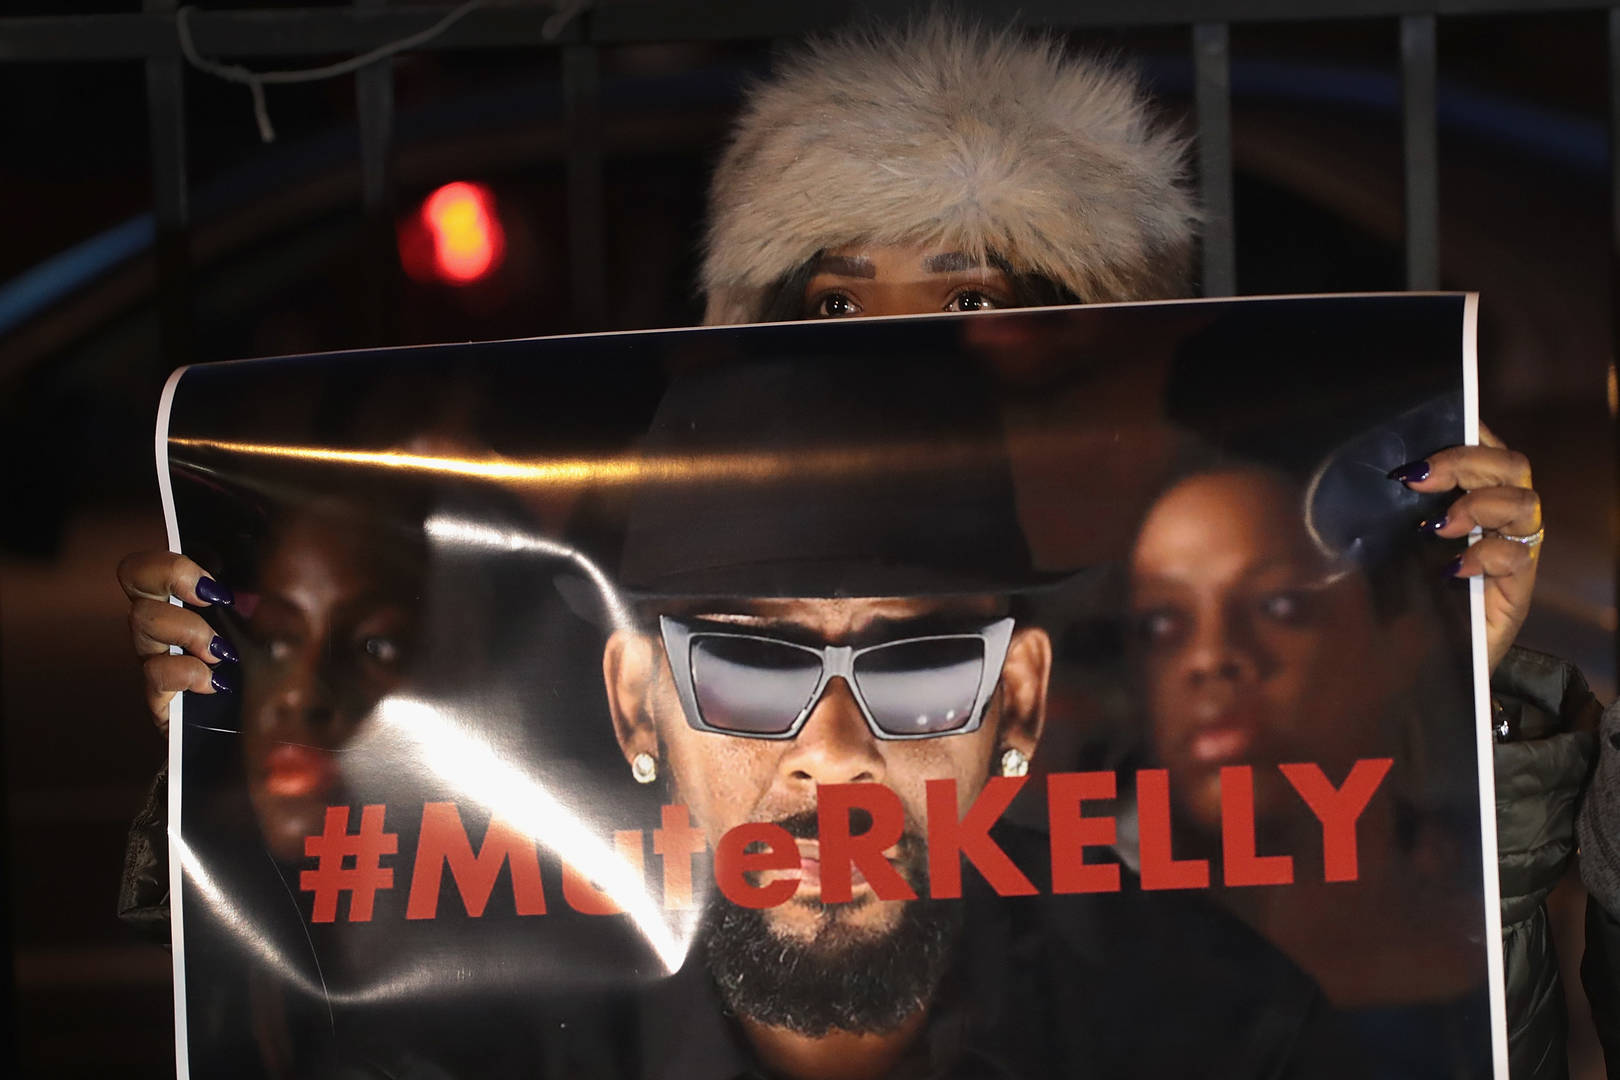 R Kelly leaves jail after posting $100K in sex abuse case